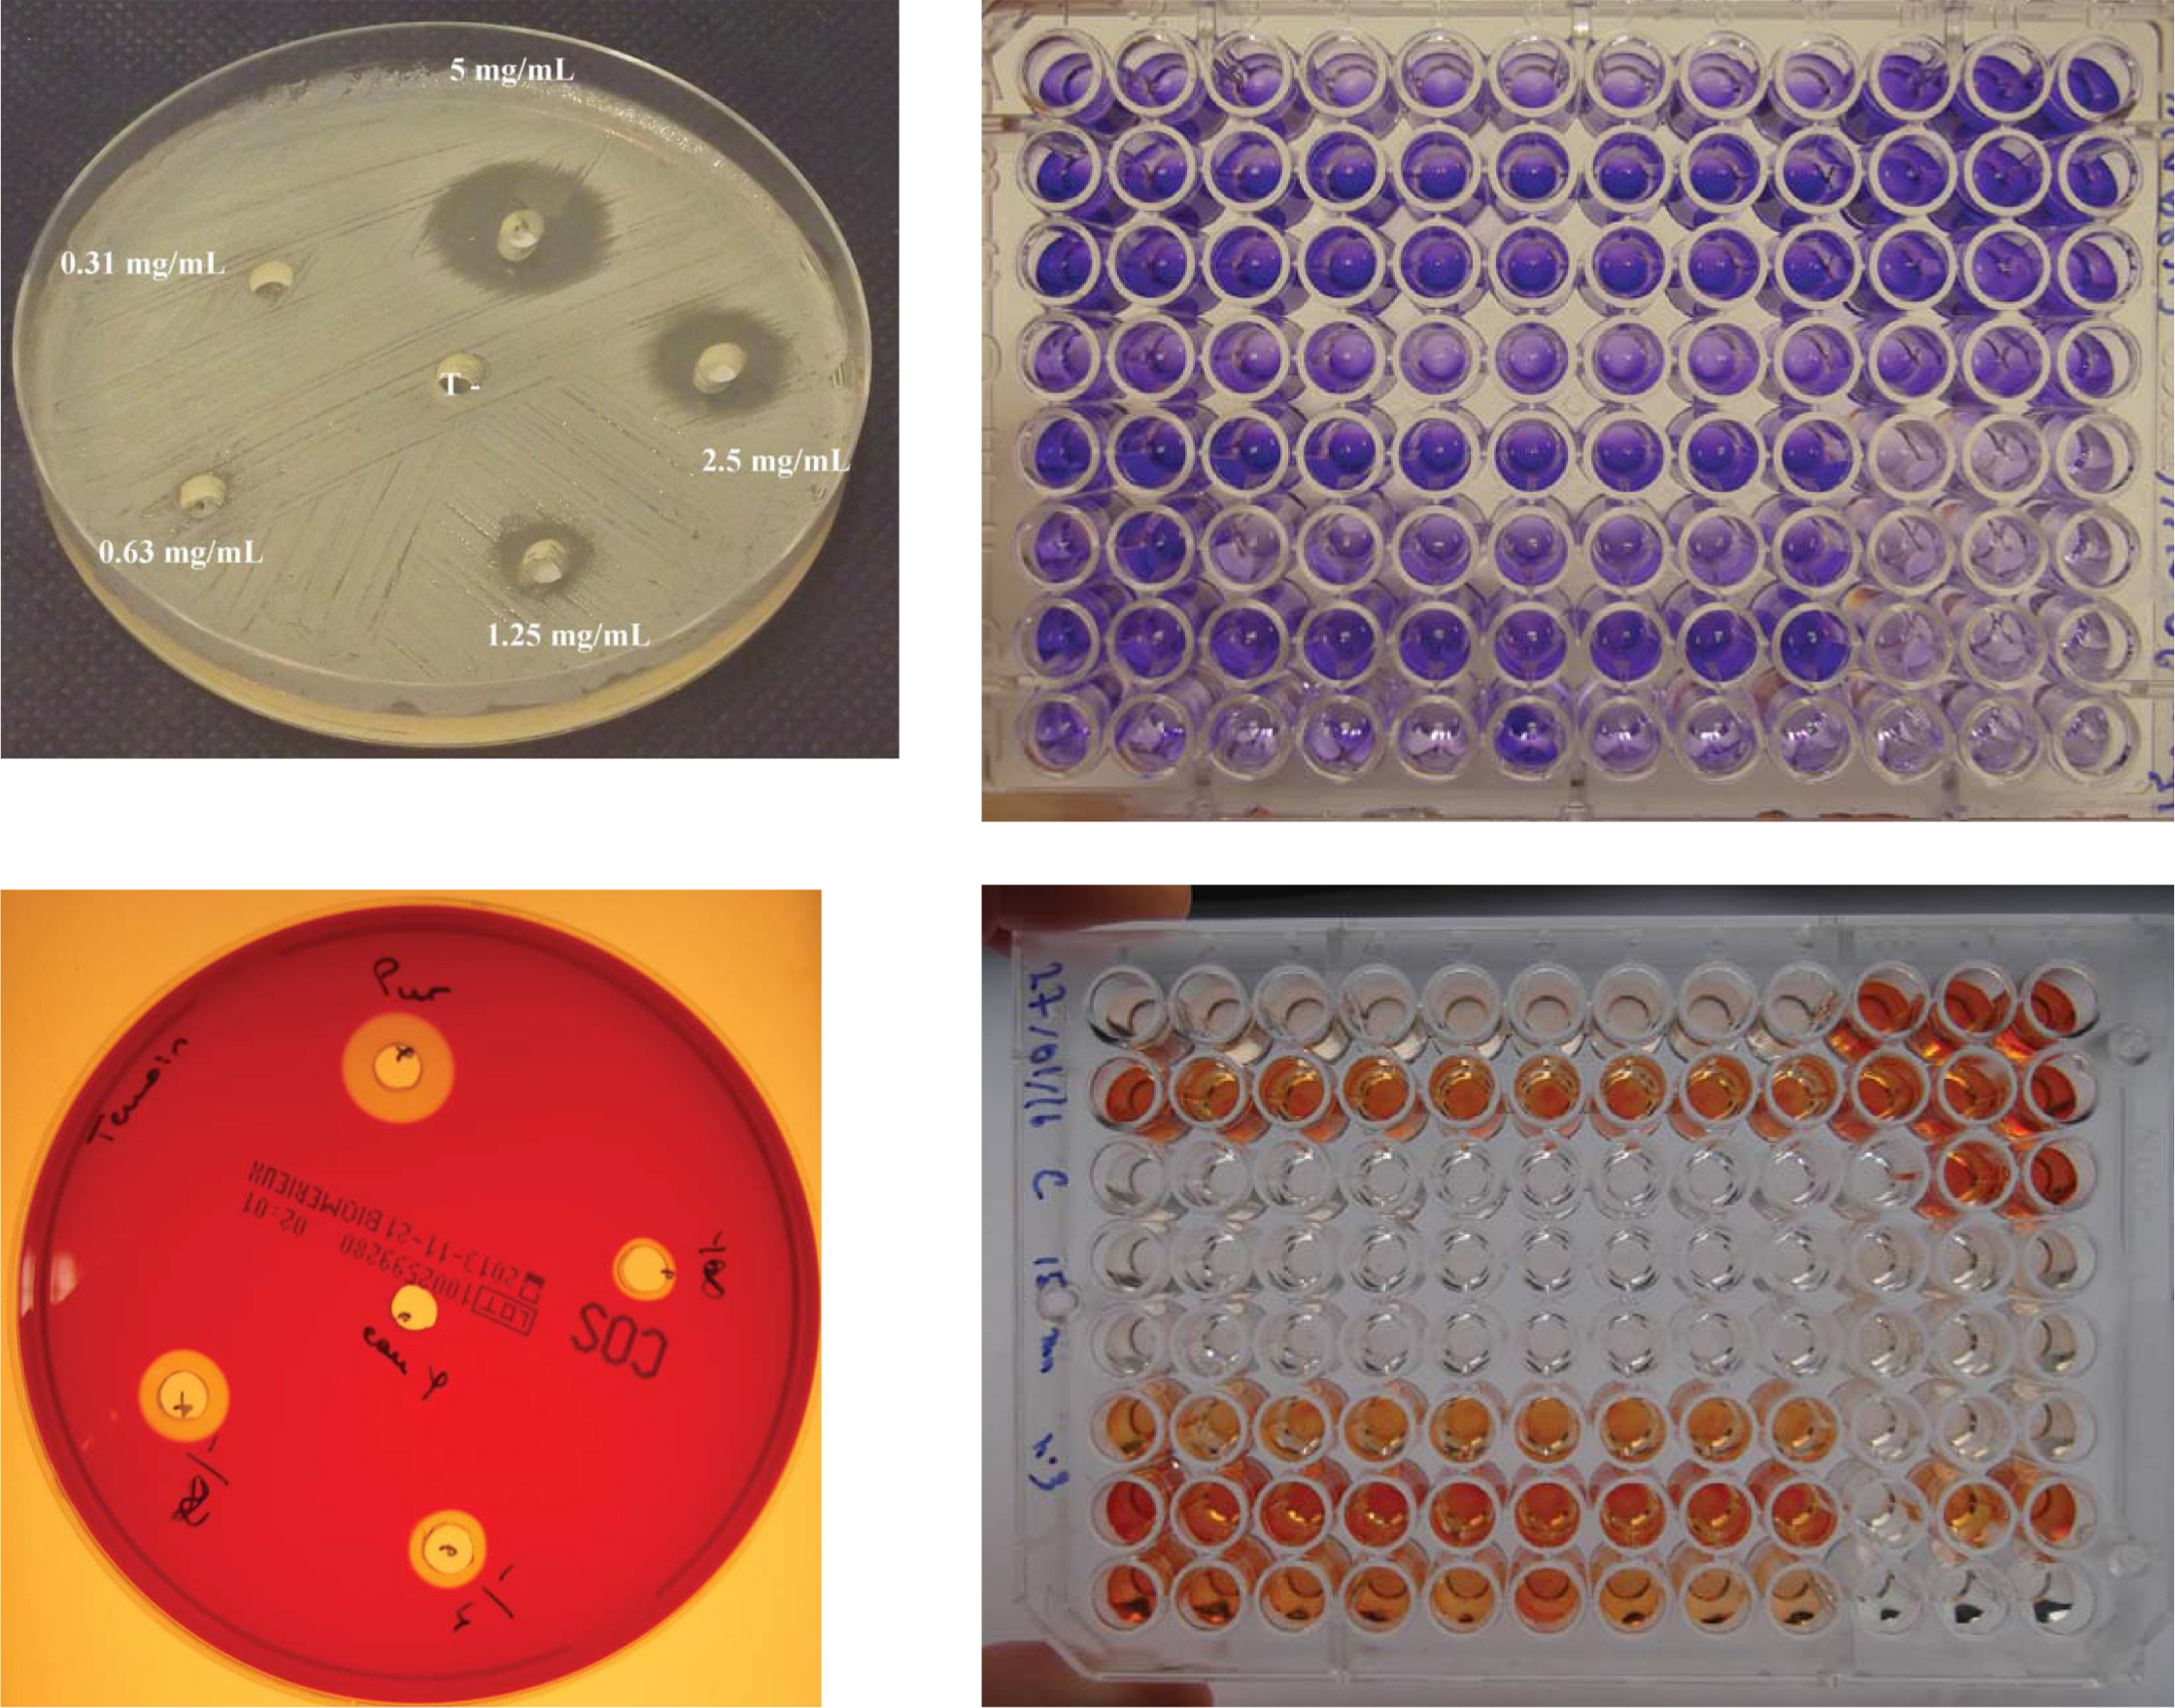 Variables and their measures. Upper left - Staphylococcus aureus inhibited by amlodipine. A 5-mg capsule was opened and the content diluted in 1 mL of isotonic water; 40 µL of solution per pits. Serial ½ dilution and negative control (isotonic water). Lower left - Hemolytic properties of crushed amlodipine. Serial ½ dilution and negative control (isotonic water). Pure: diameter of hemolysis 11 mm around pits containing amlodipine solution (40 µL). Upper right - Crystal violet coloring of Streptococcus salivarius biofilm grown in microtiter plates. A darker purple color corresponds to a thicker biofilm in the pits. Lower right - XTT orange coloring of Candida albicans biofilm grown in microtiter plates. A darker orange color corresponds to a thicker biofilm in the pits.